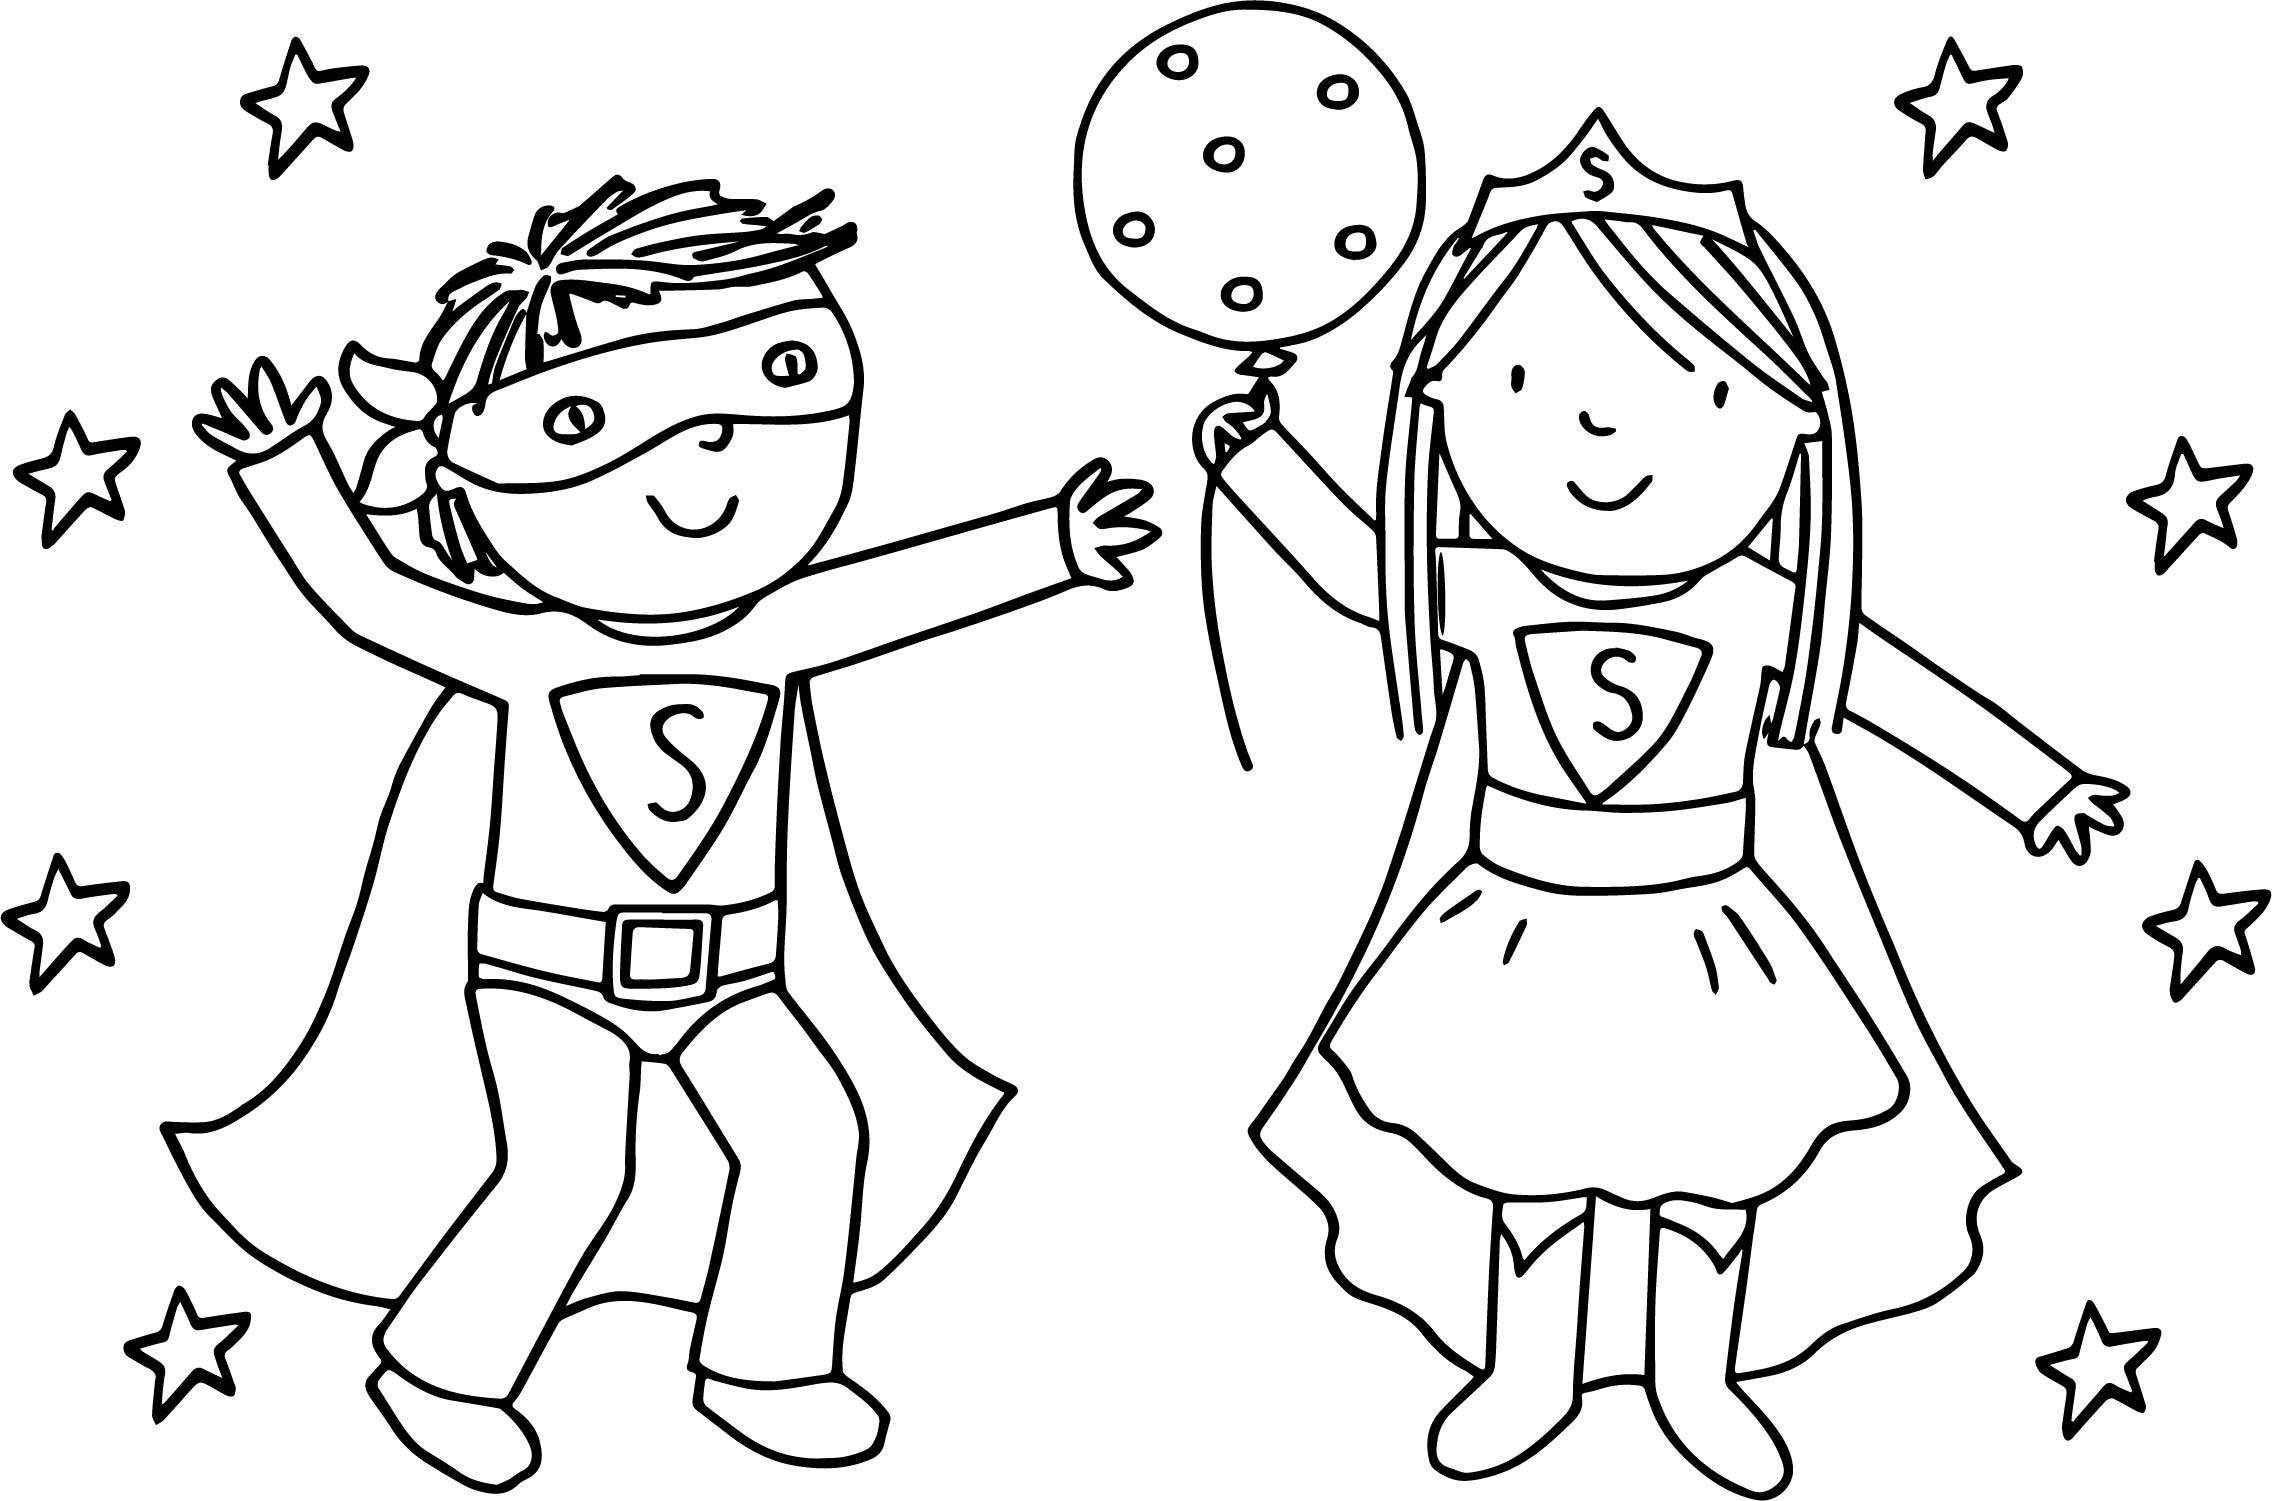 2272x1501 Miki And Yuu From Marmalade Boy Coloring Pages For Kids Luxury